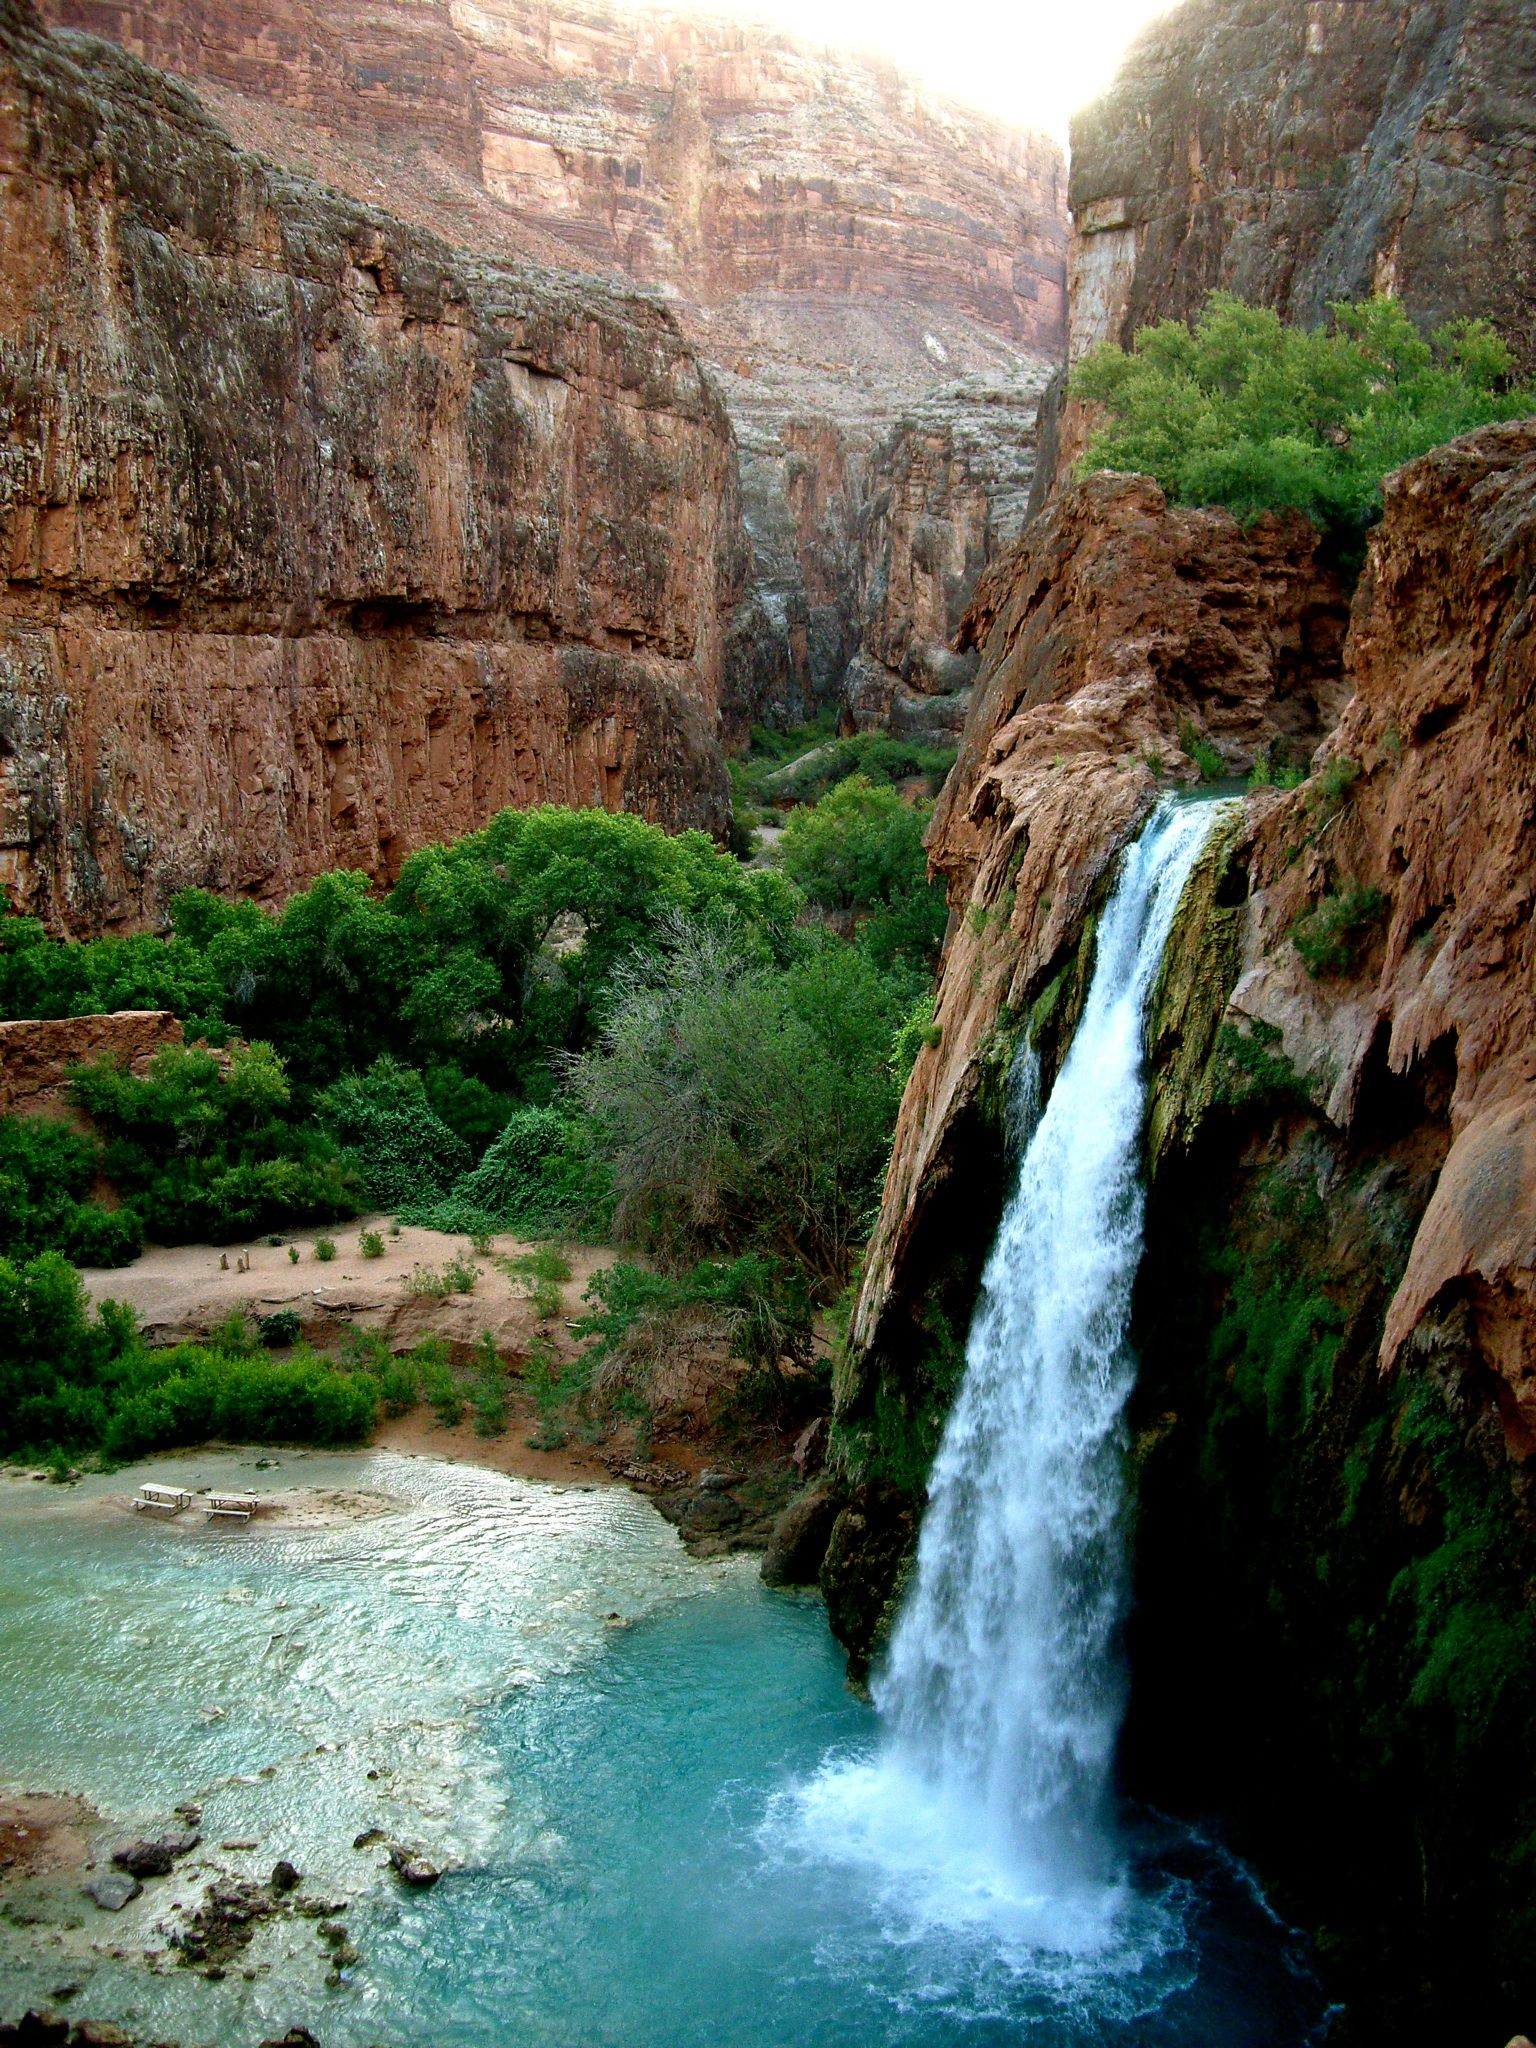 Havasupai, probably one of the most beautiful places in the world.